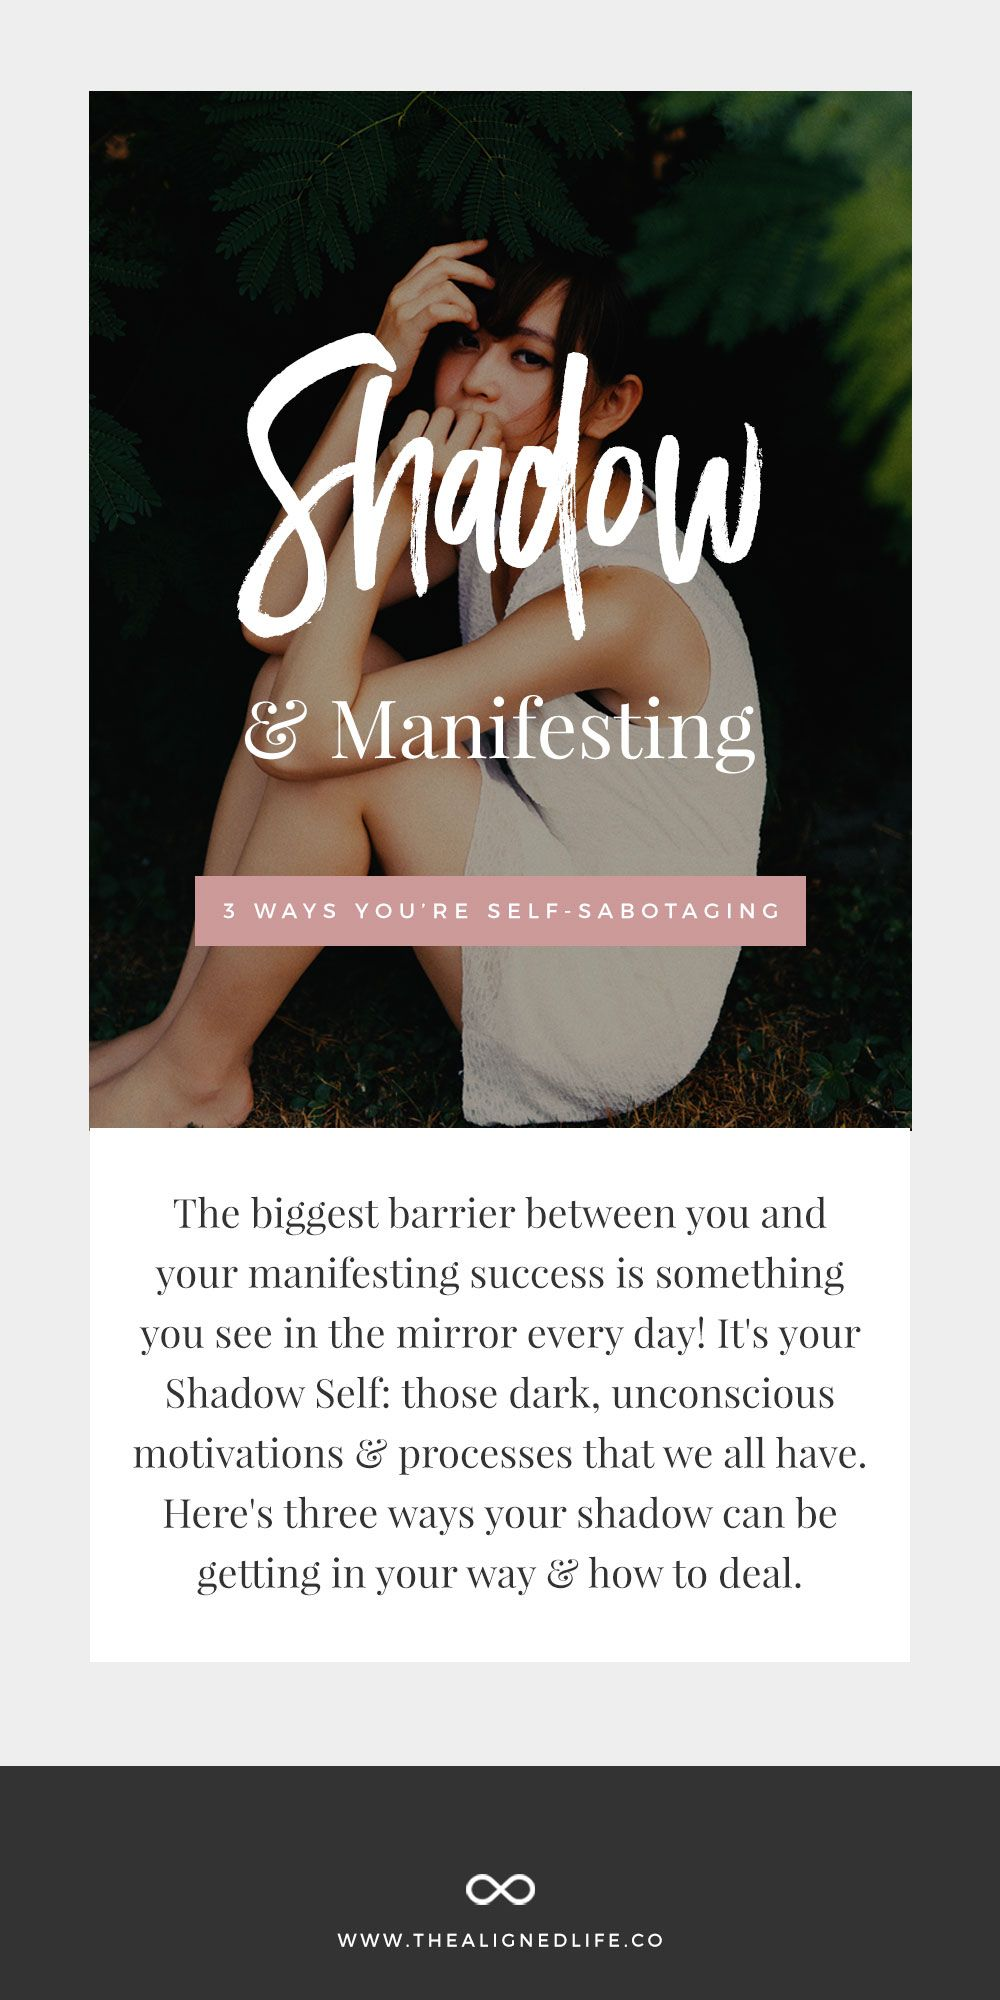 Your Shadow + Manifesting 3 Ways You're SelfSabotaging